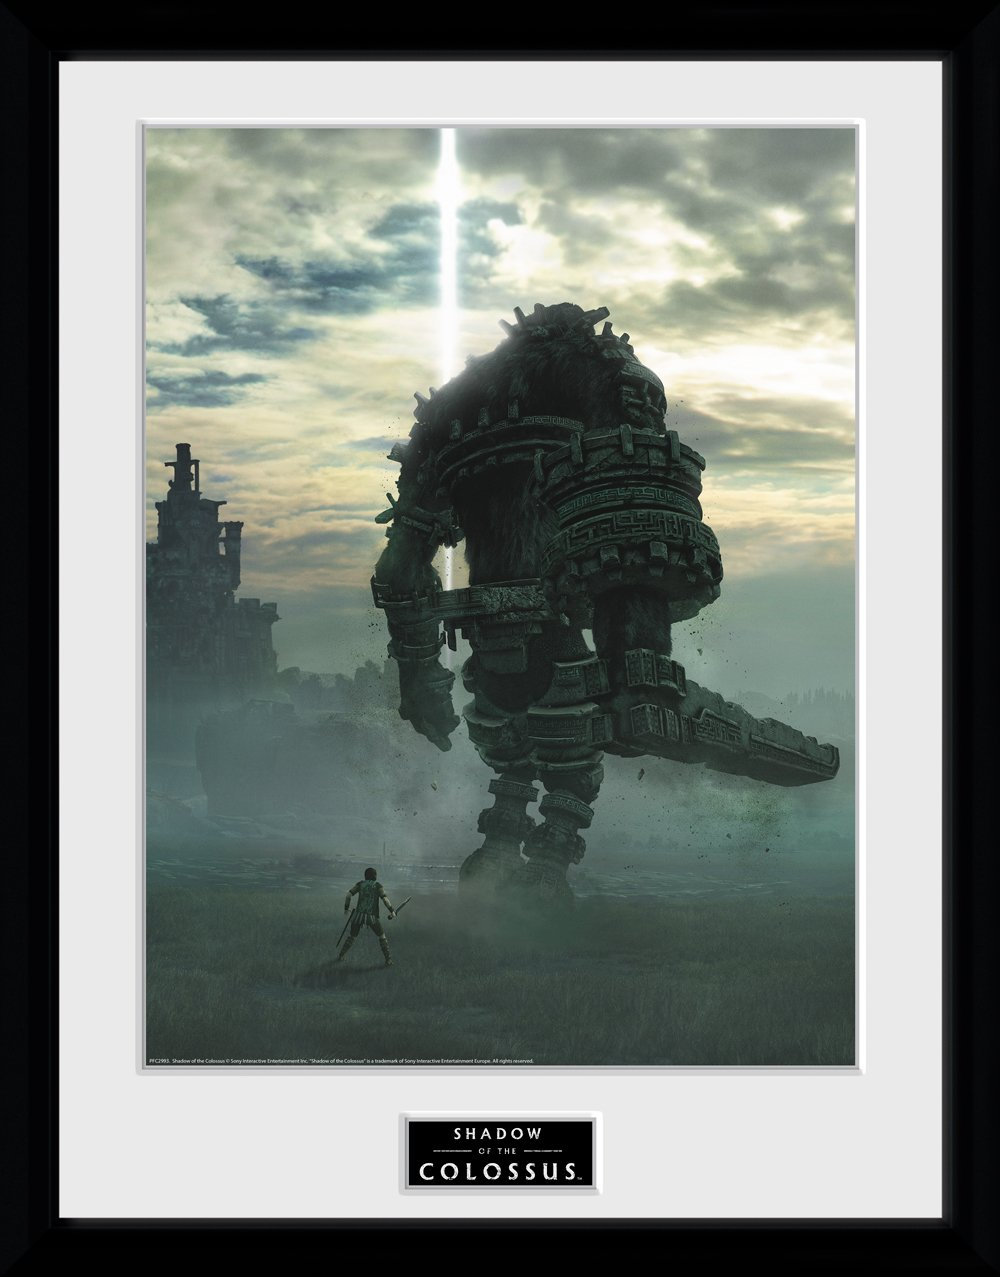 GB eye LTD, Shadow of The Colossus, Key Art, Framed Print 30x40cm, Wood, Various, 52 x 44 x 3 cm PFC2993